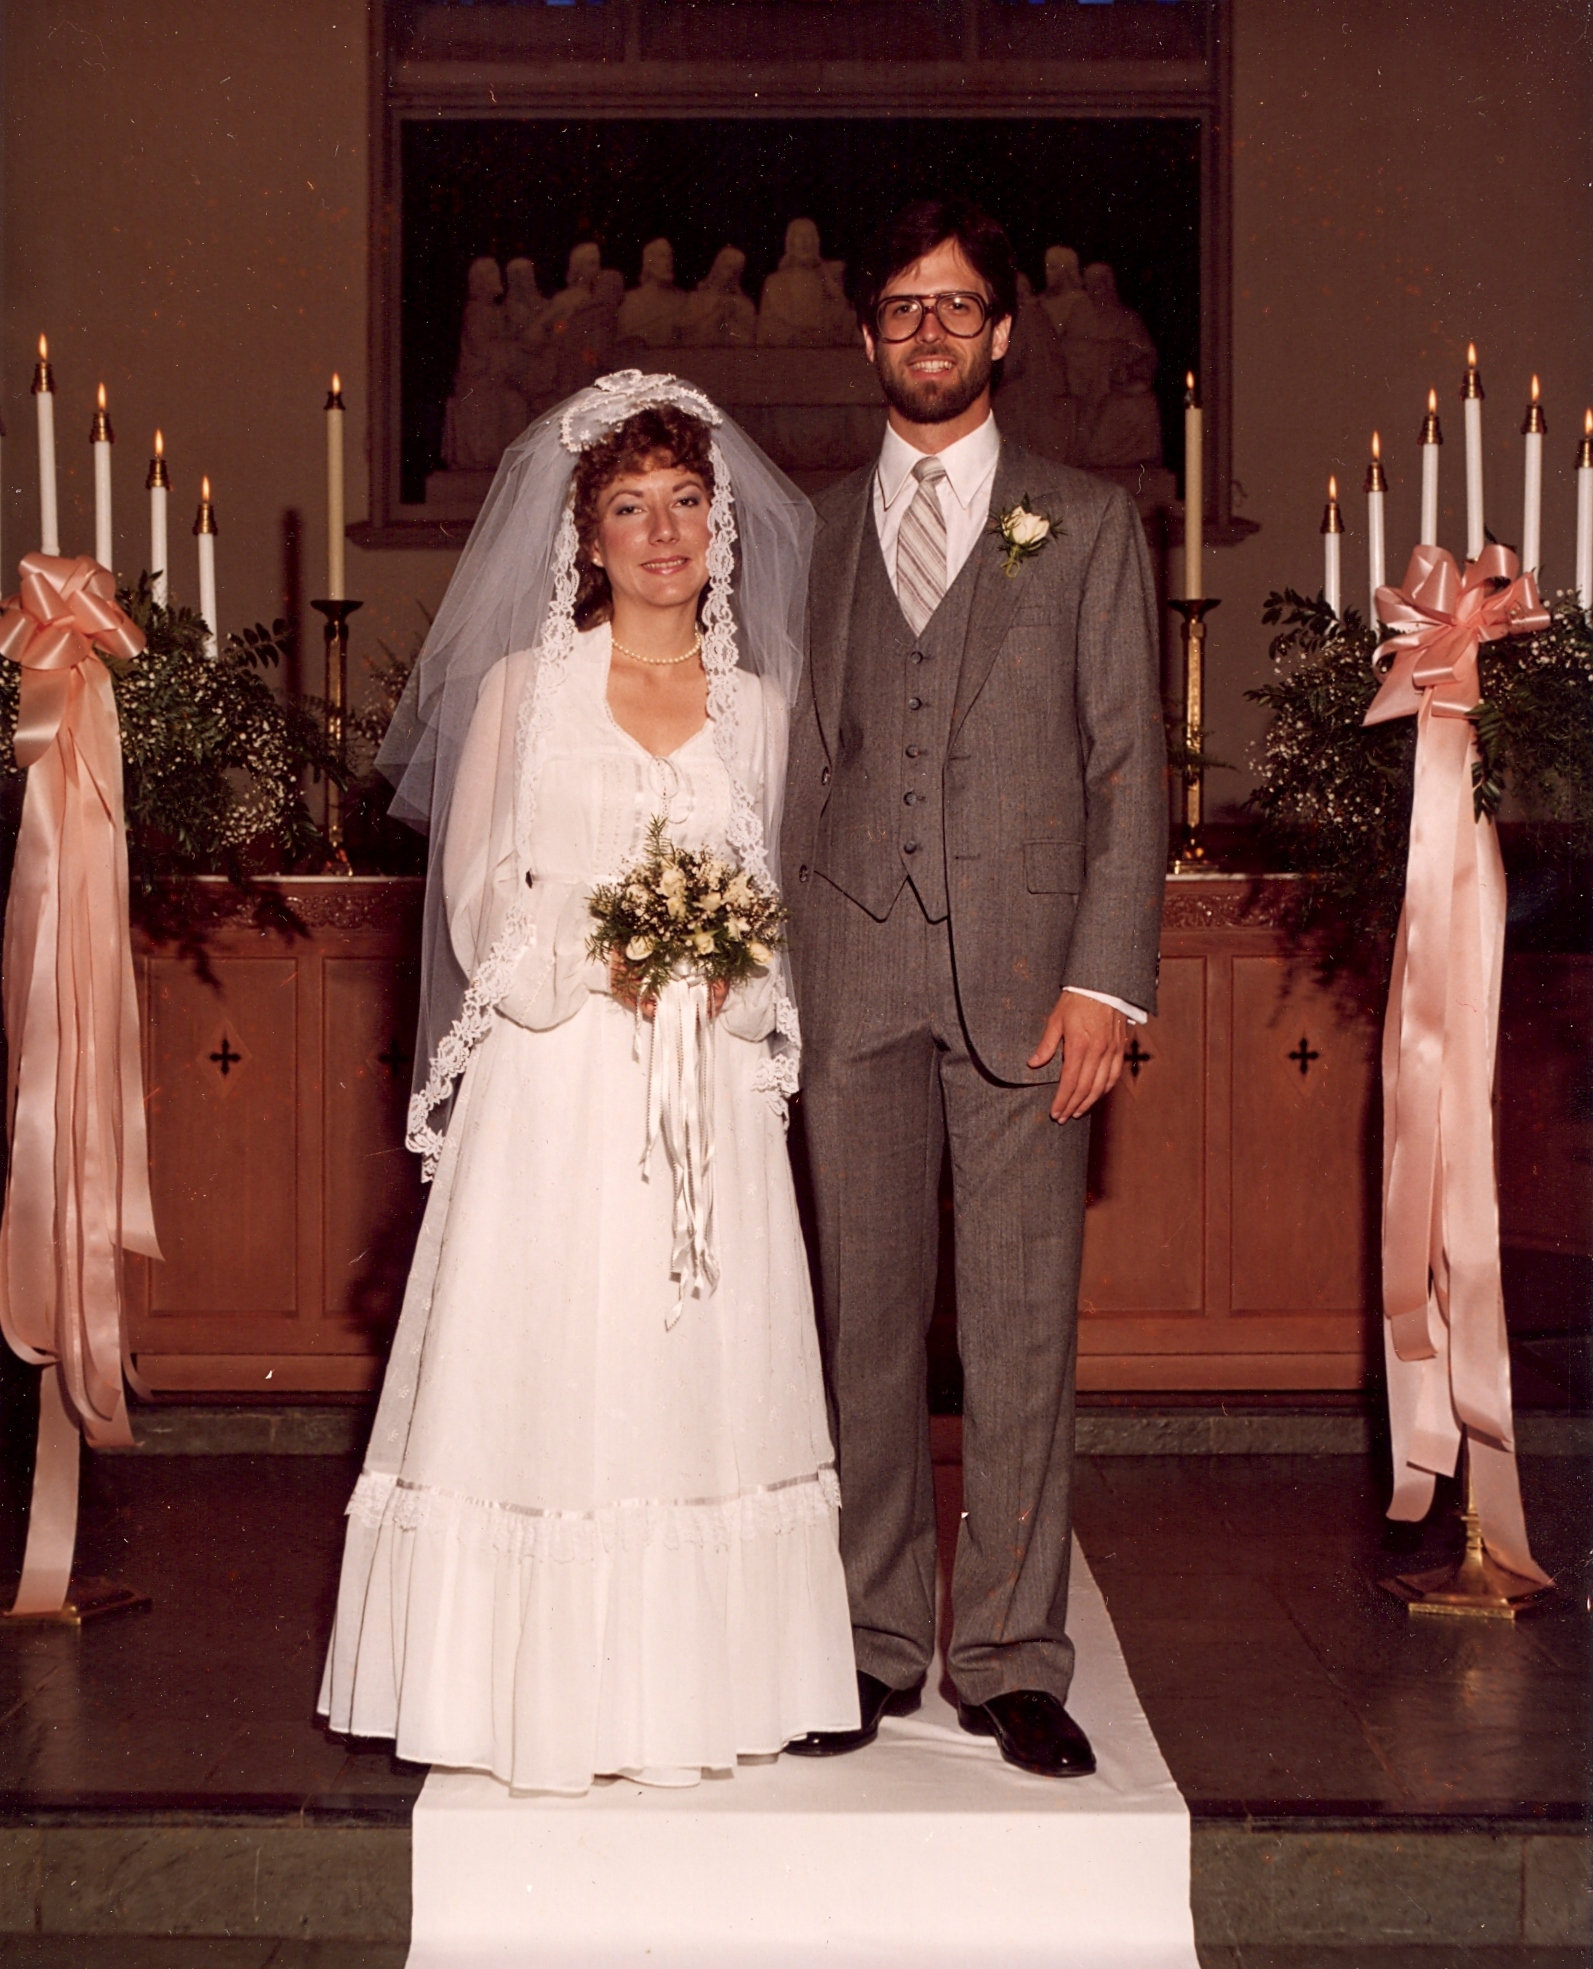 Our parents getting married in 1981 - look how cute they are!